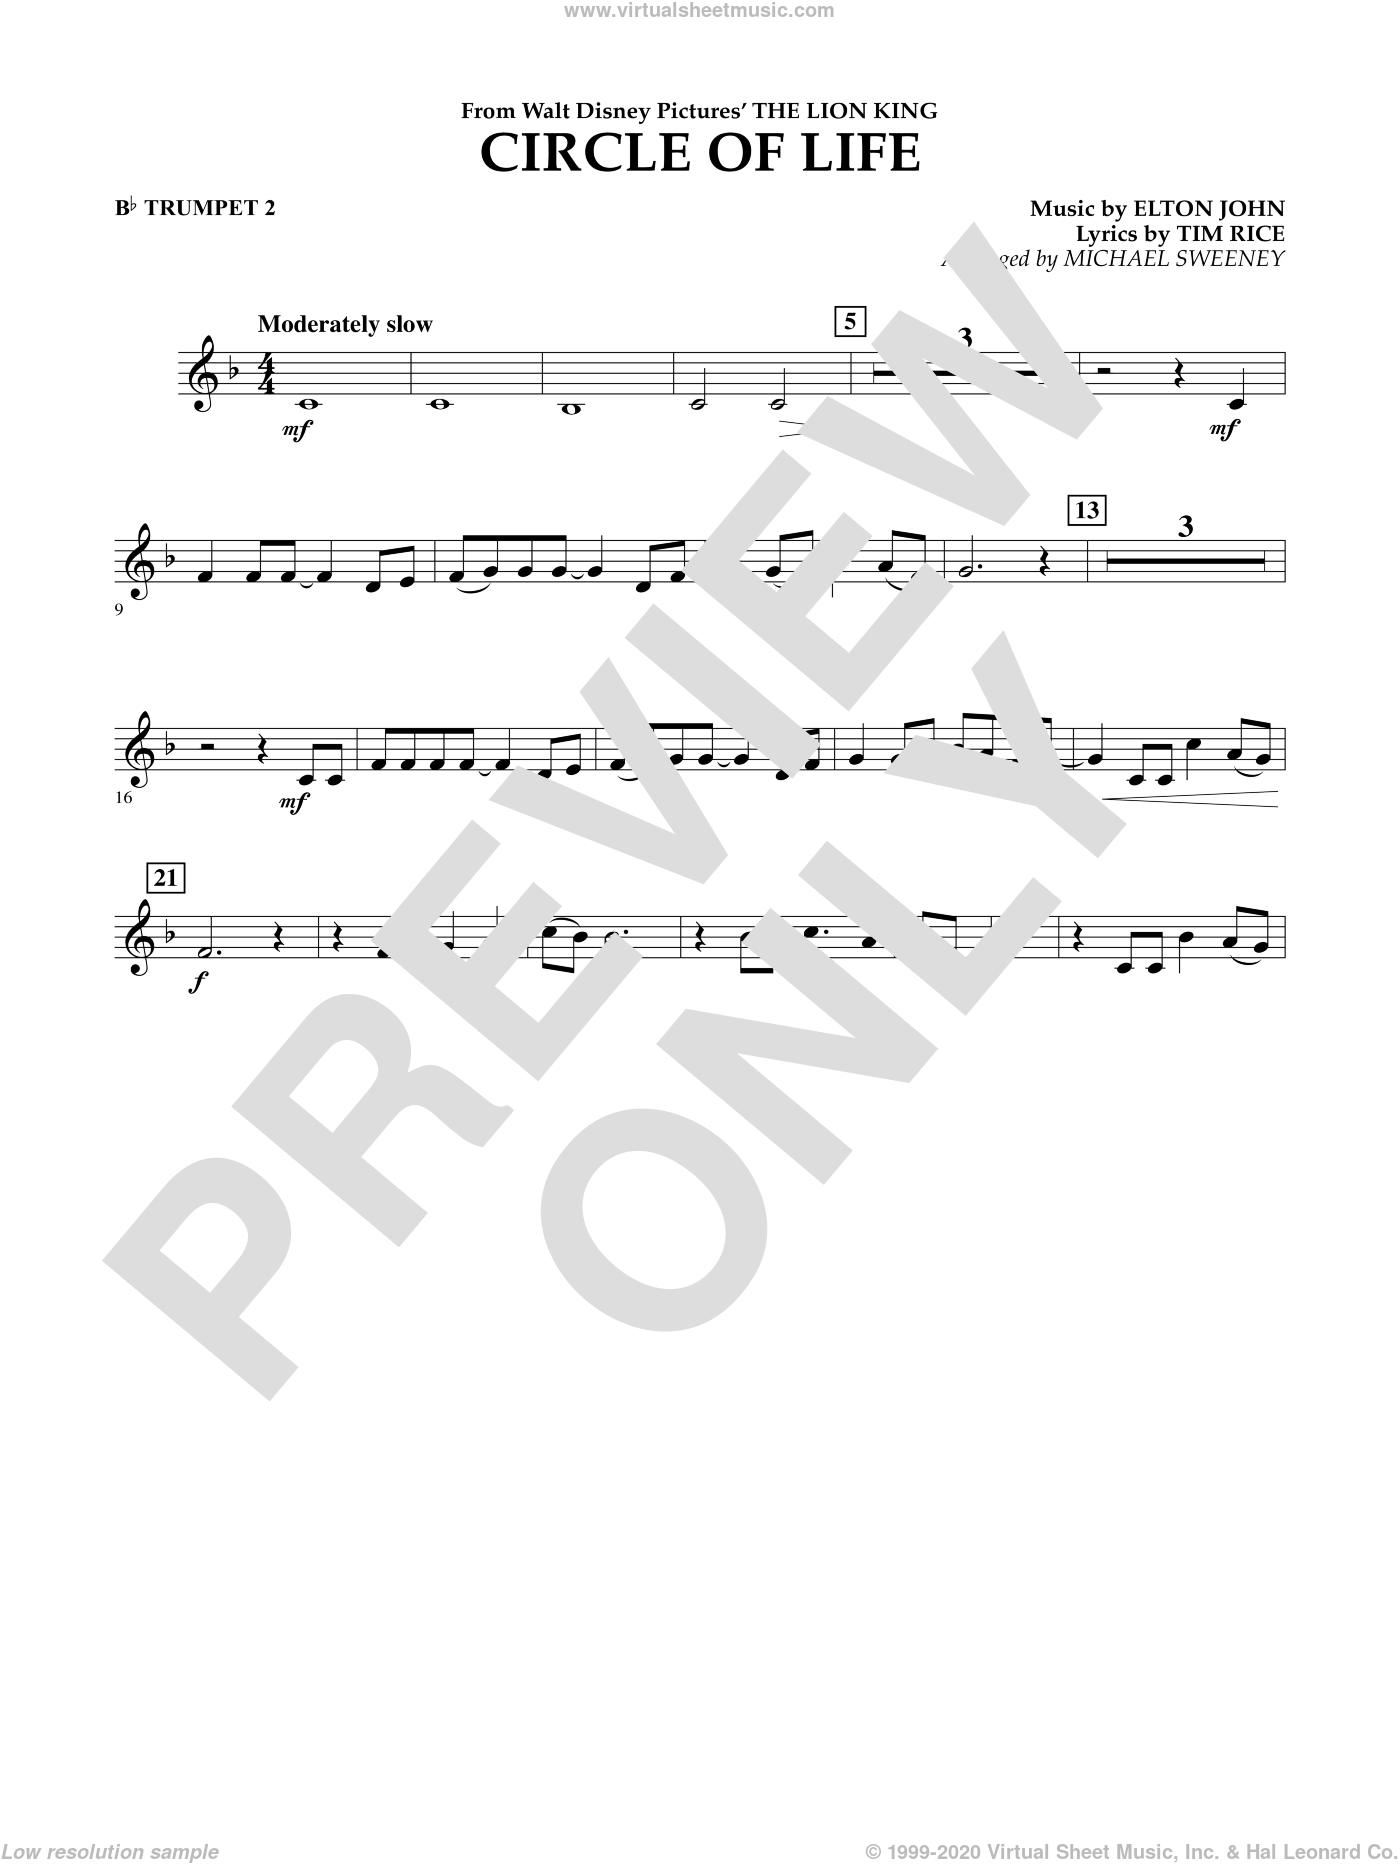 Circle of Life (from The Lion King) sheet music for concert band (Bb trumpet 2) by Elton John, Michael Sweeney and Tim Rice, intermediate concert band (Bb trumpet 2). Score Image Preview.